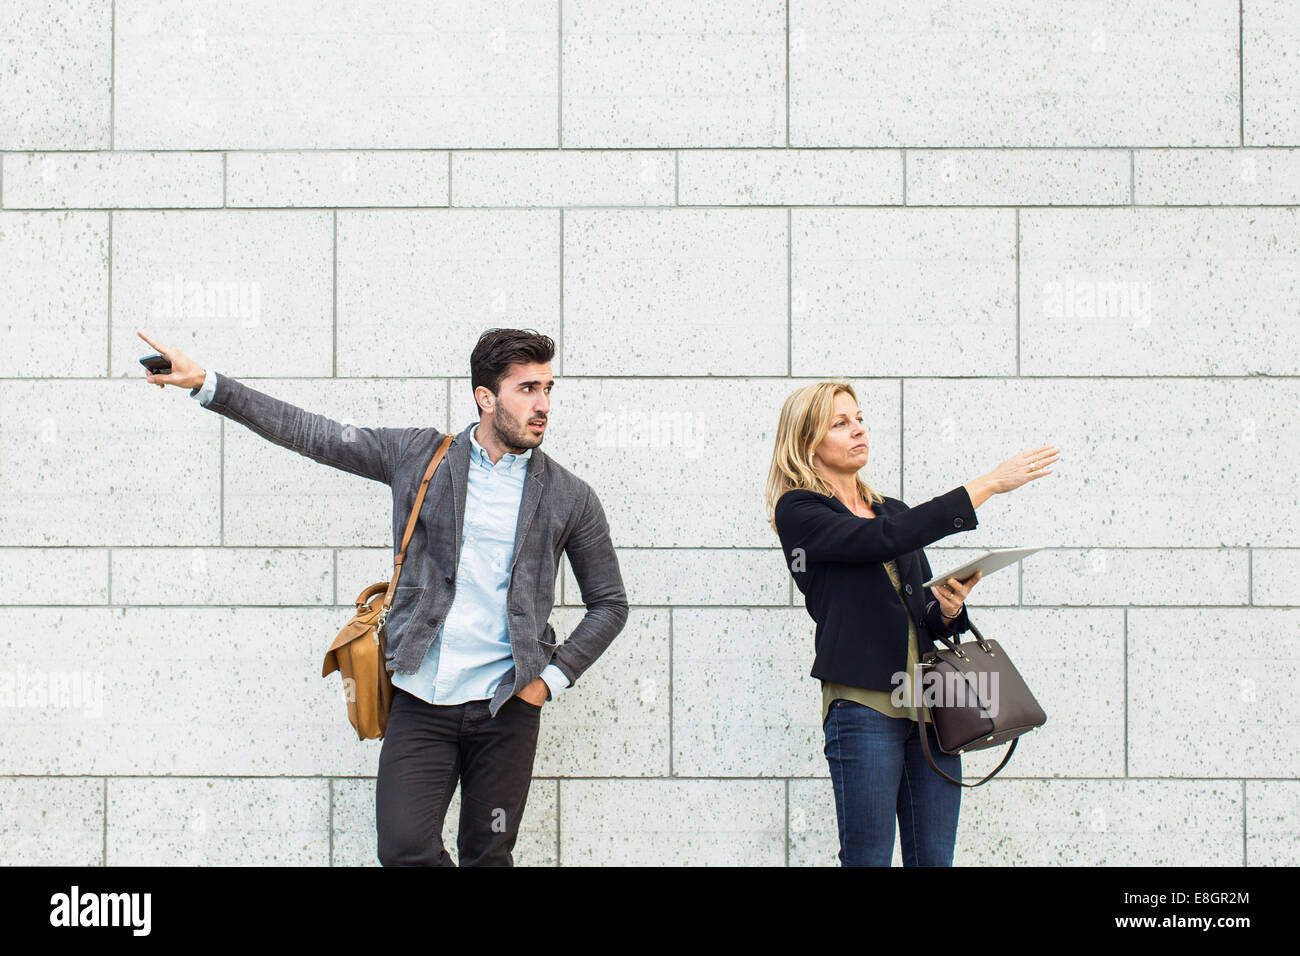 Business colleagues pointing opposite directions against wall outdoors - Stock Image